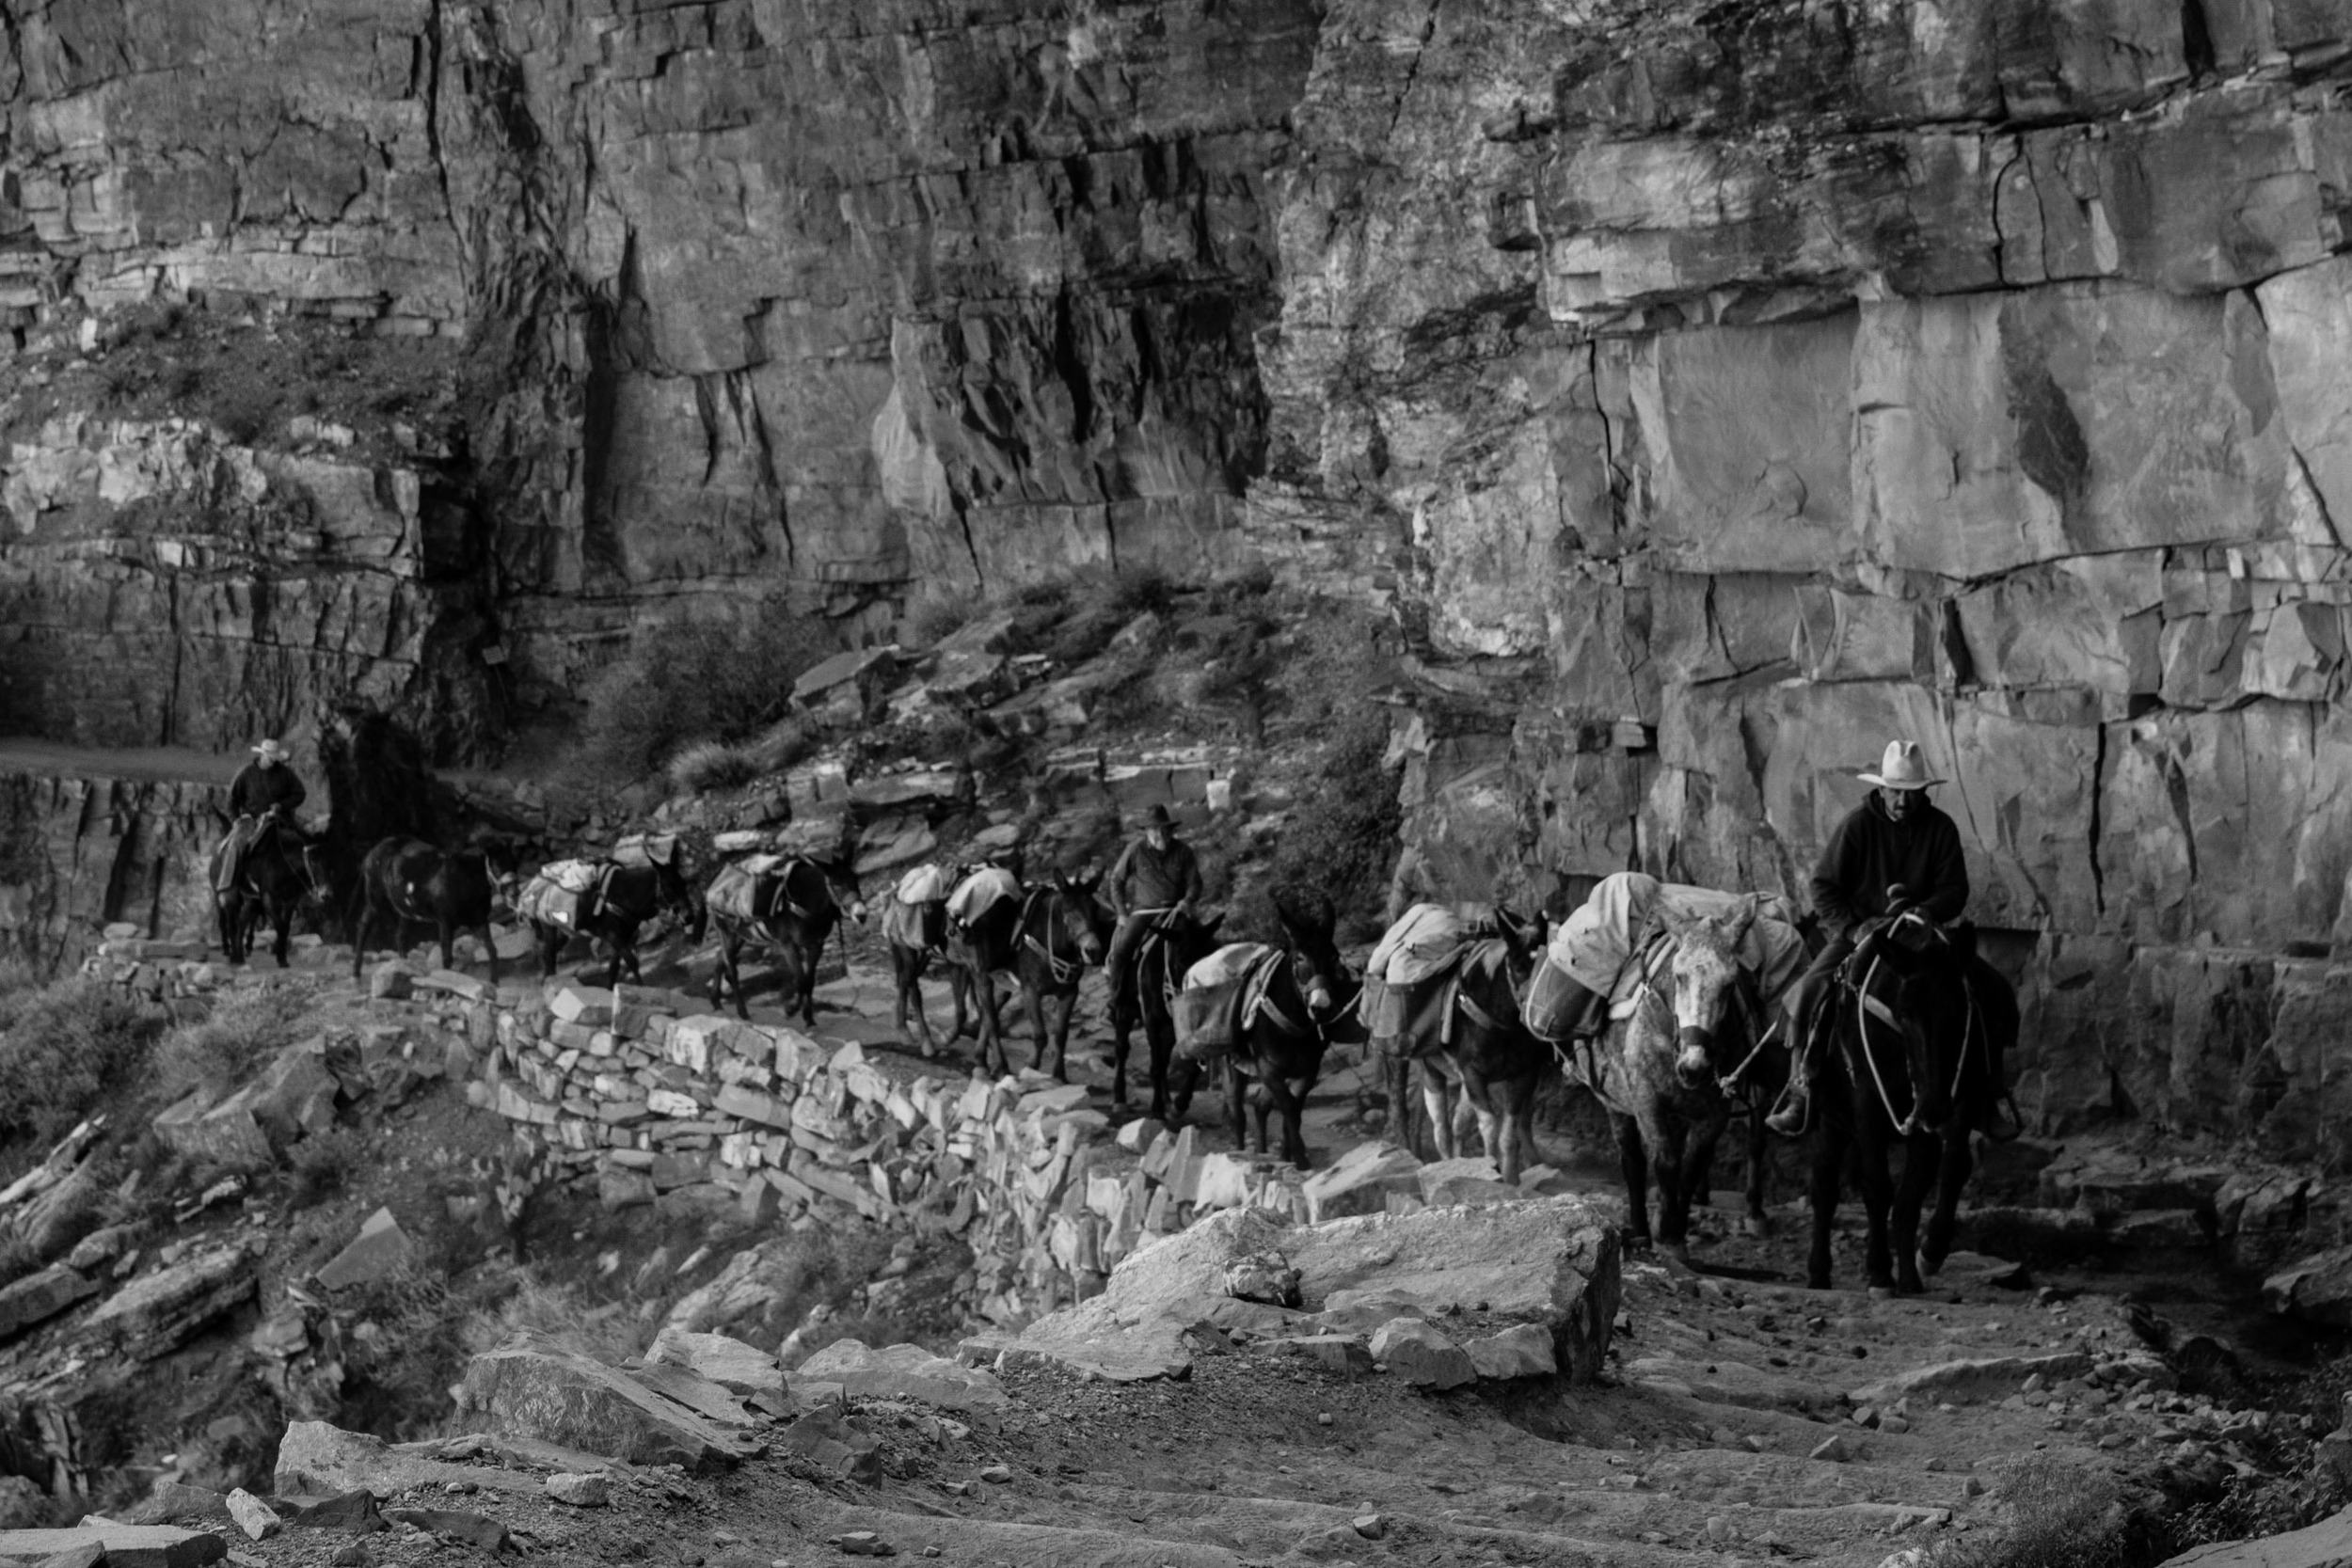 Mule train carrying supplies